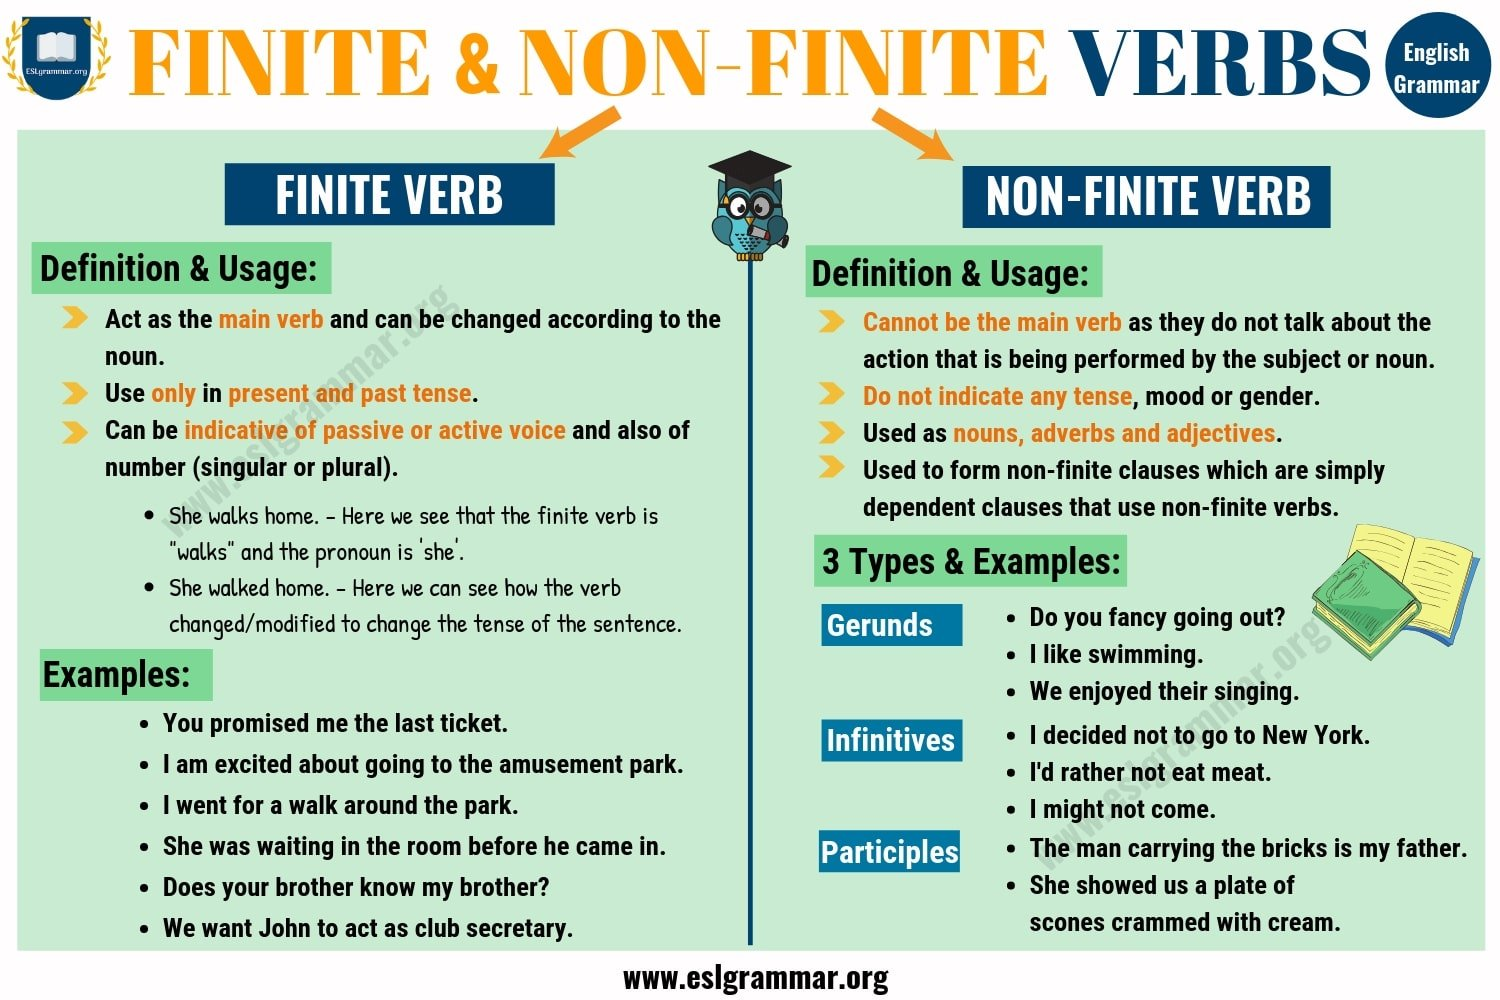 Finite and Non-Finite Verbs | Definition, Useful Rules & Examples